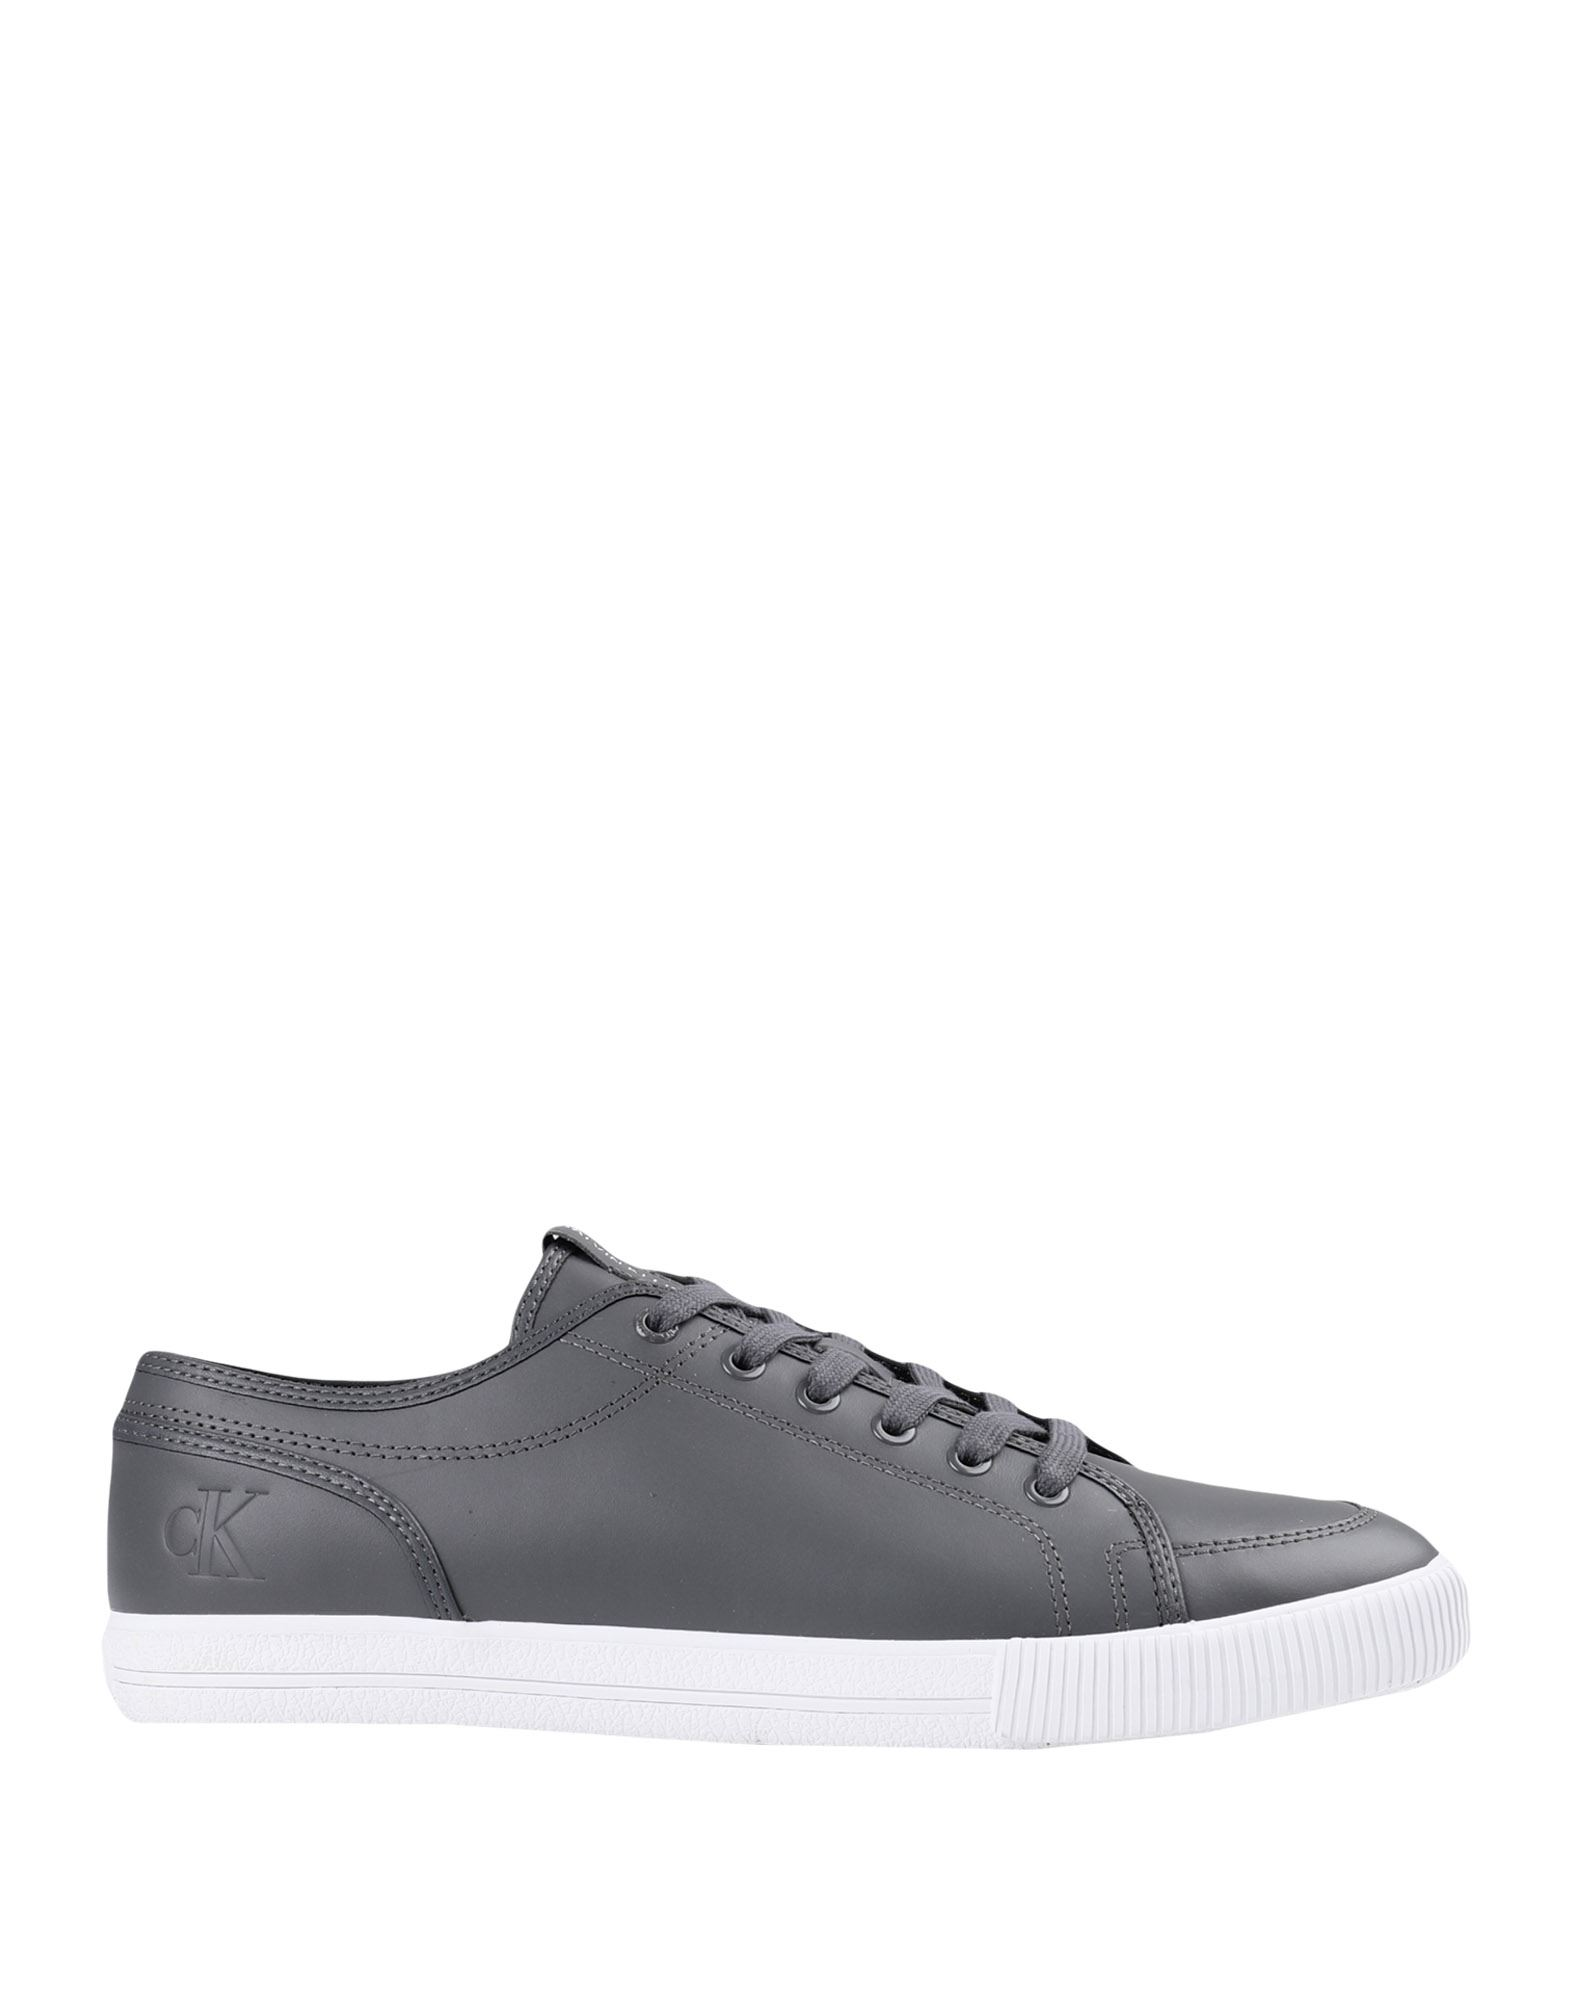 CALVIN KLEIN JEANS メンズ スニーカー ESSENTIAL VULCANO LACE-UP SNEAKERS グレー - ブラック - ホワイト